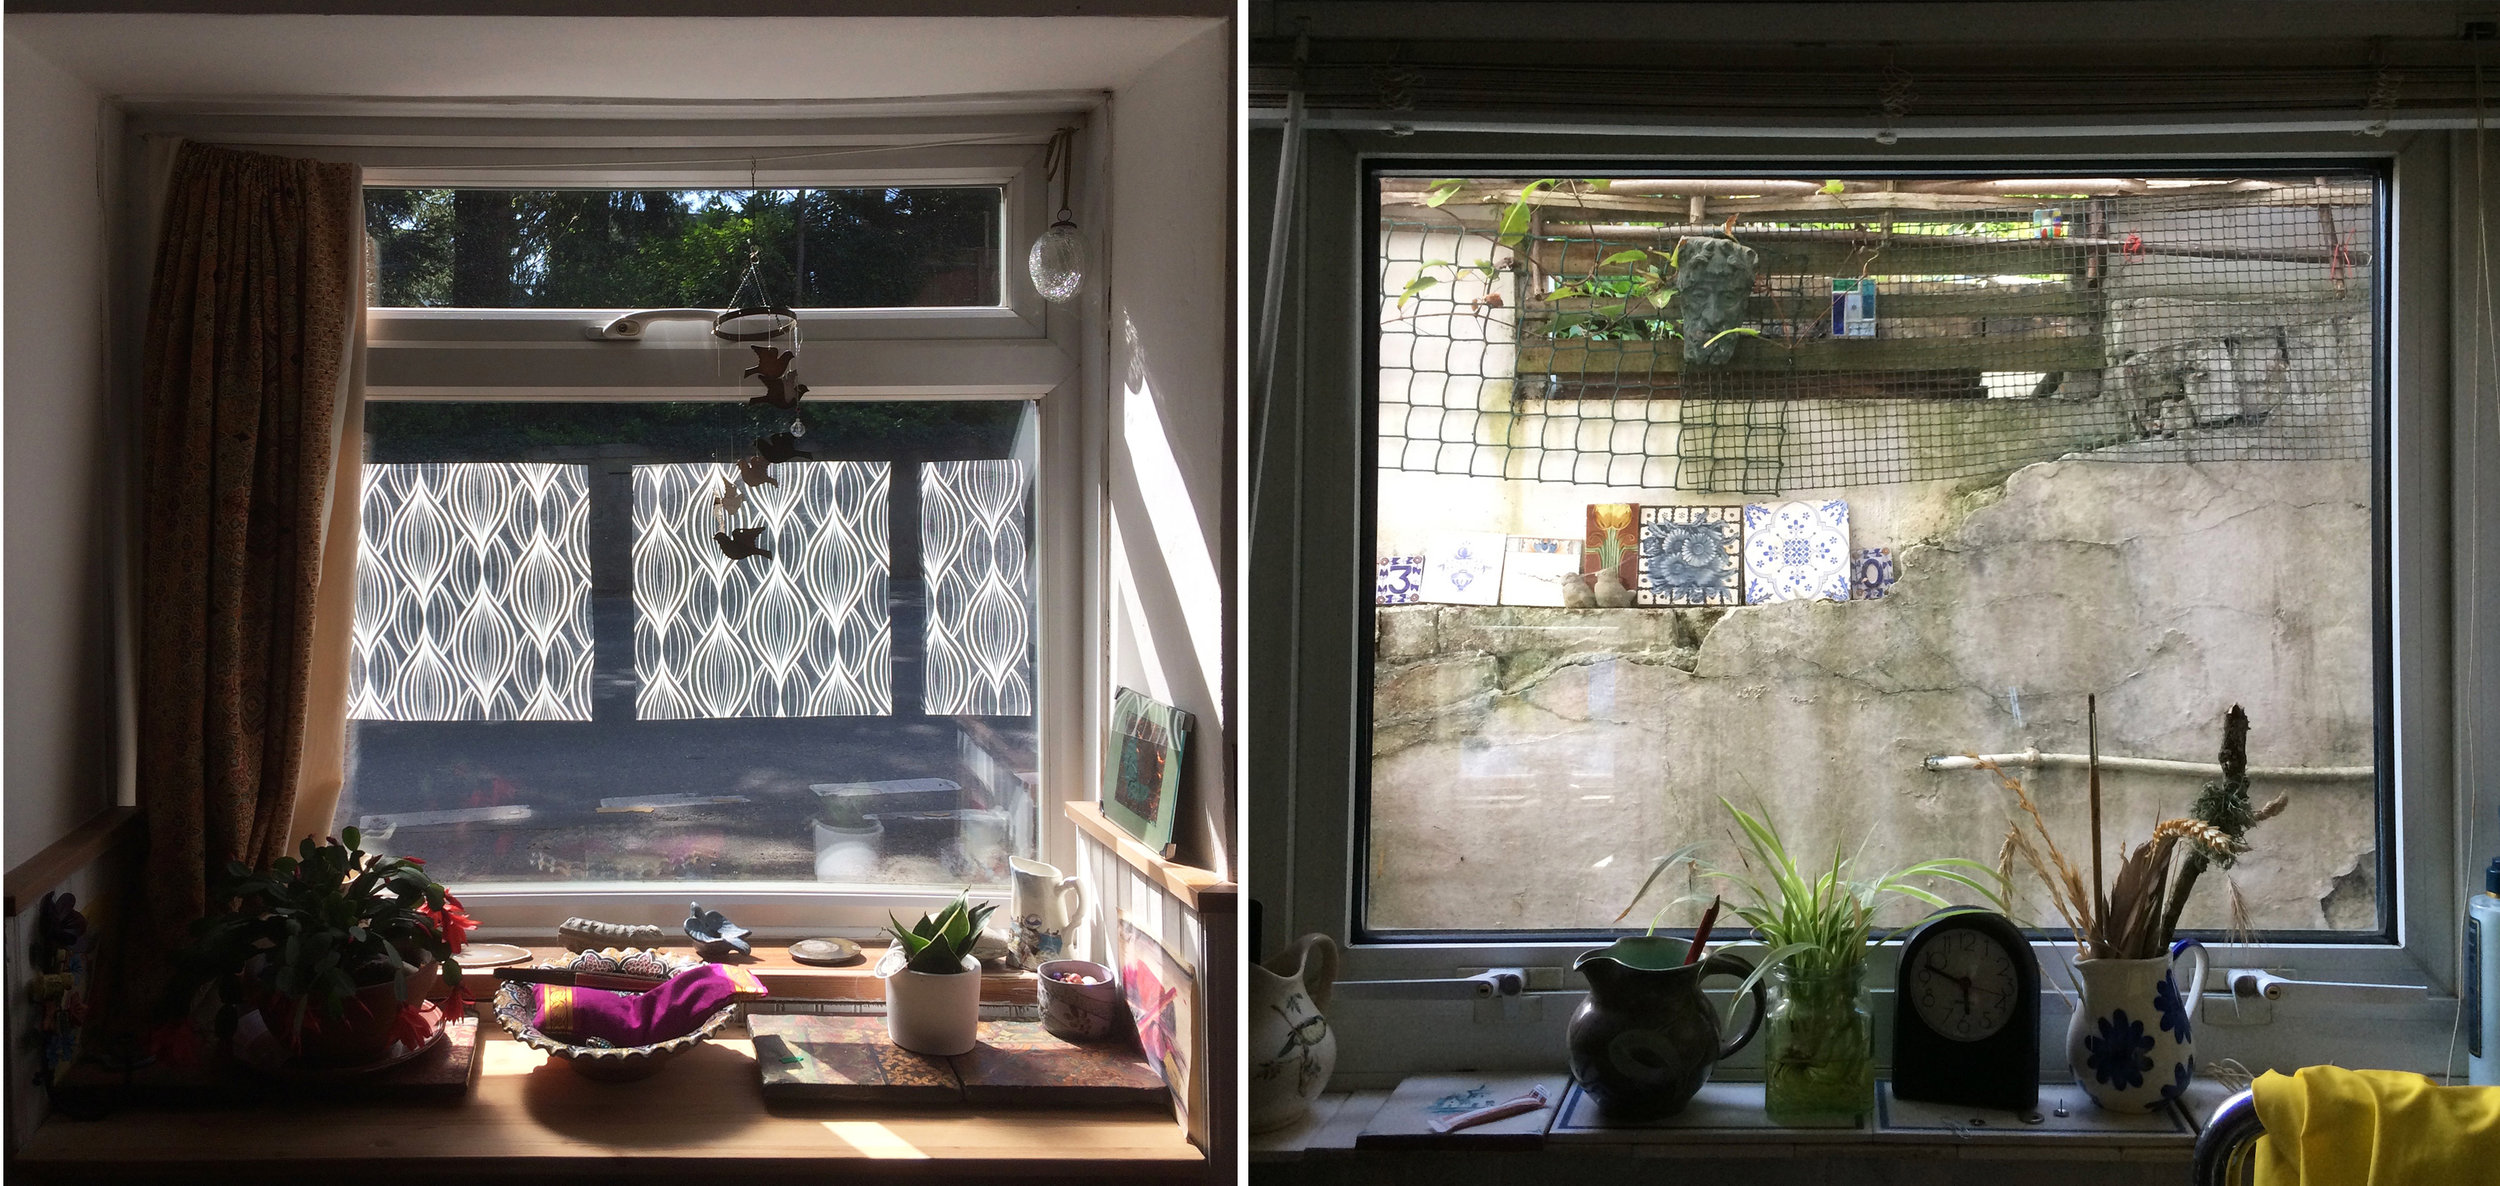 Left, roadside front window before. Right, kitchen window.